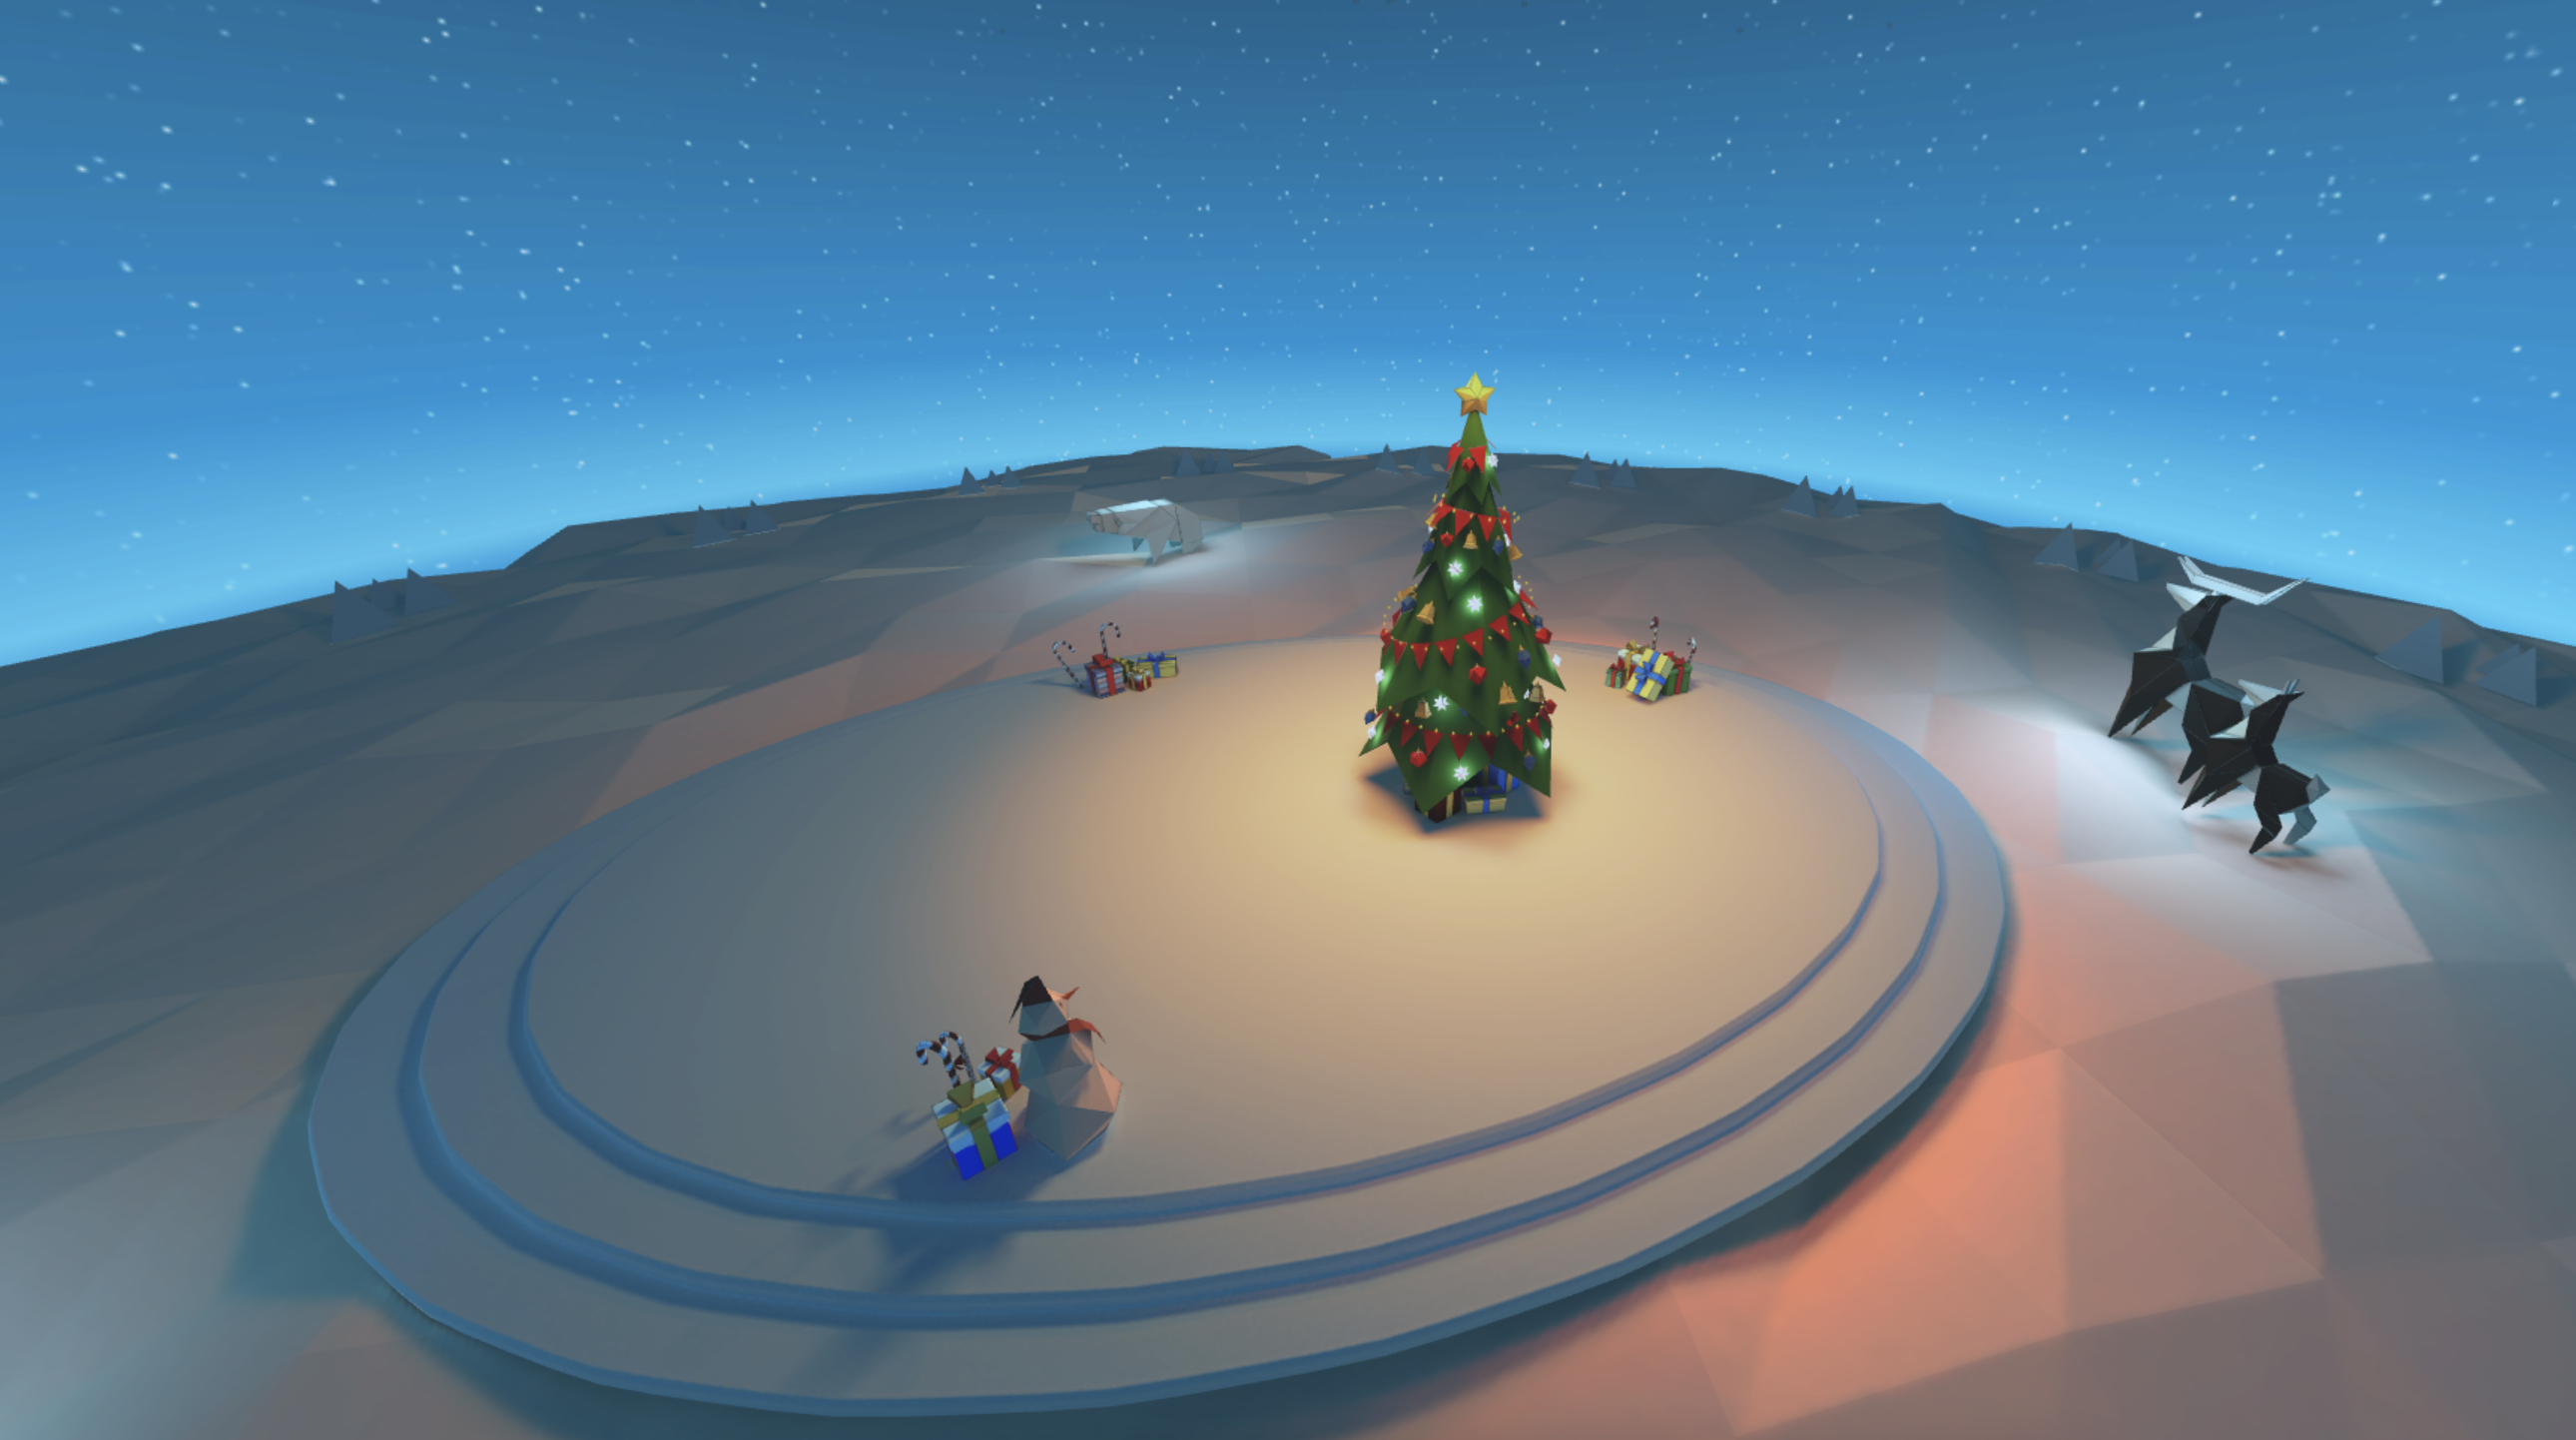 A 3D environment scene with snow and a tree with christmas decorations.